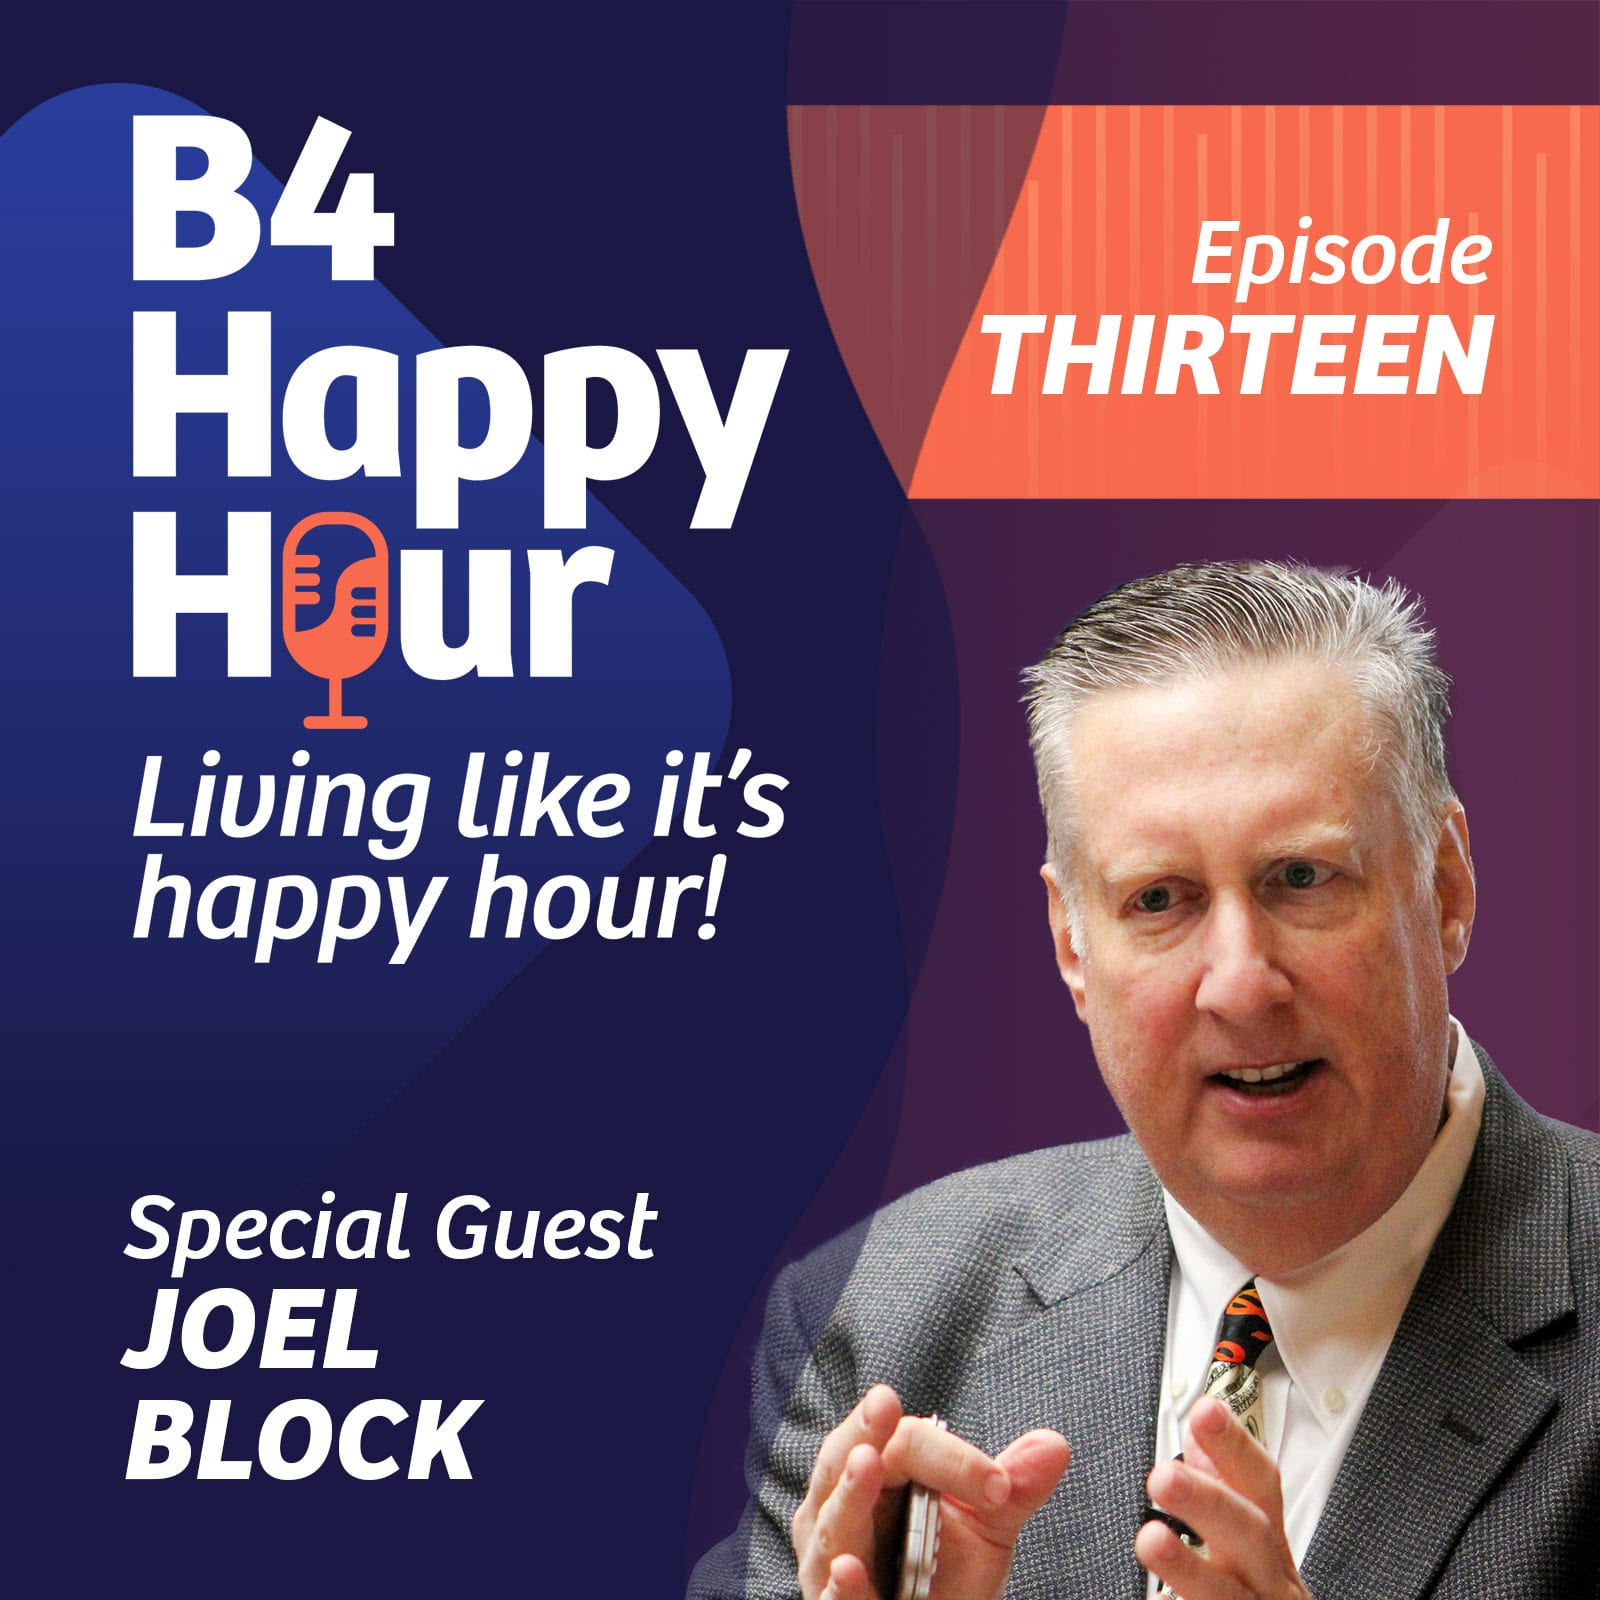 B4 Happy Hour Podcast - Episode 13